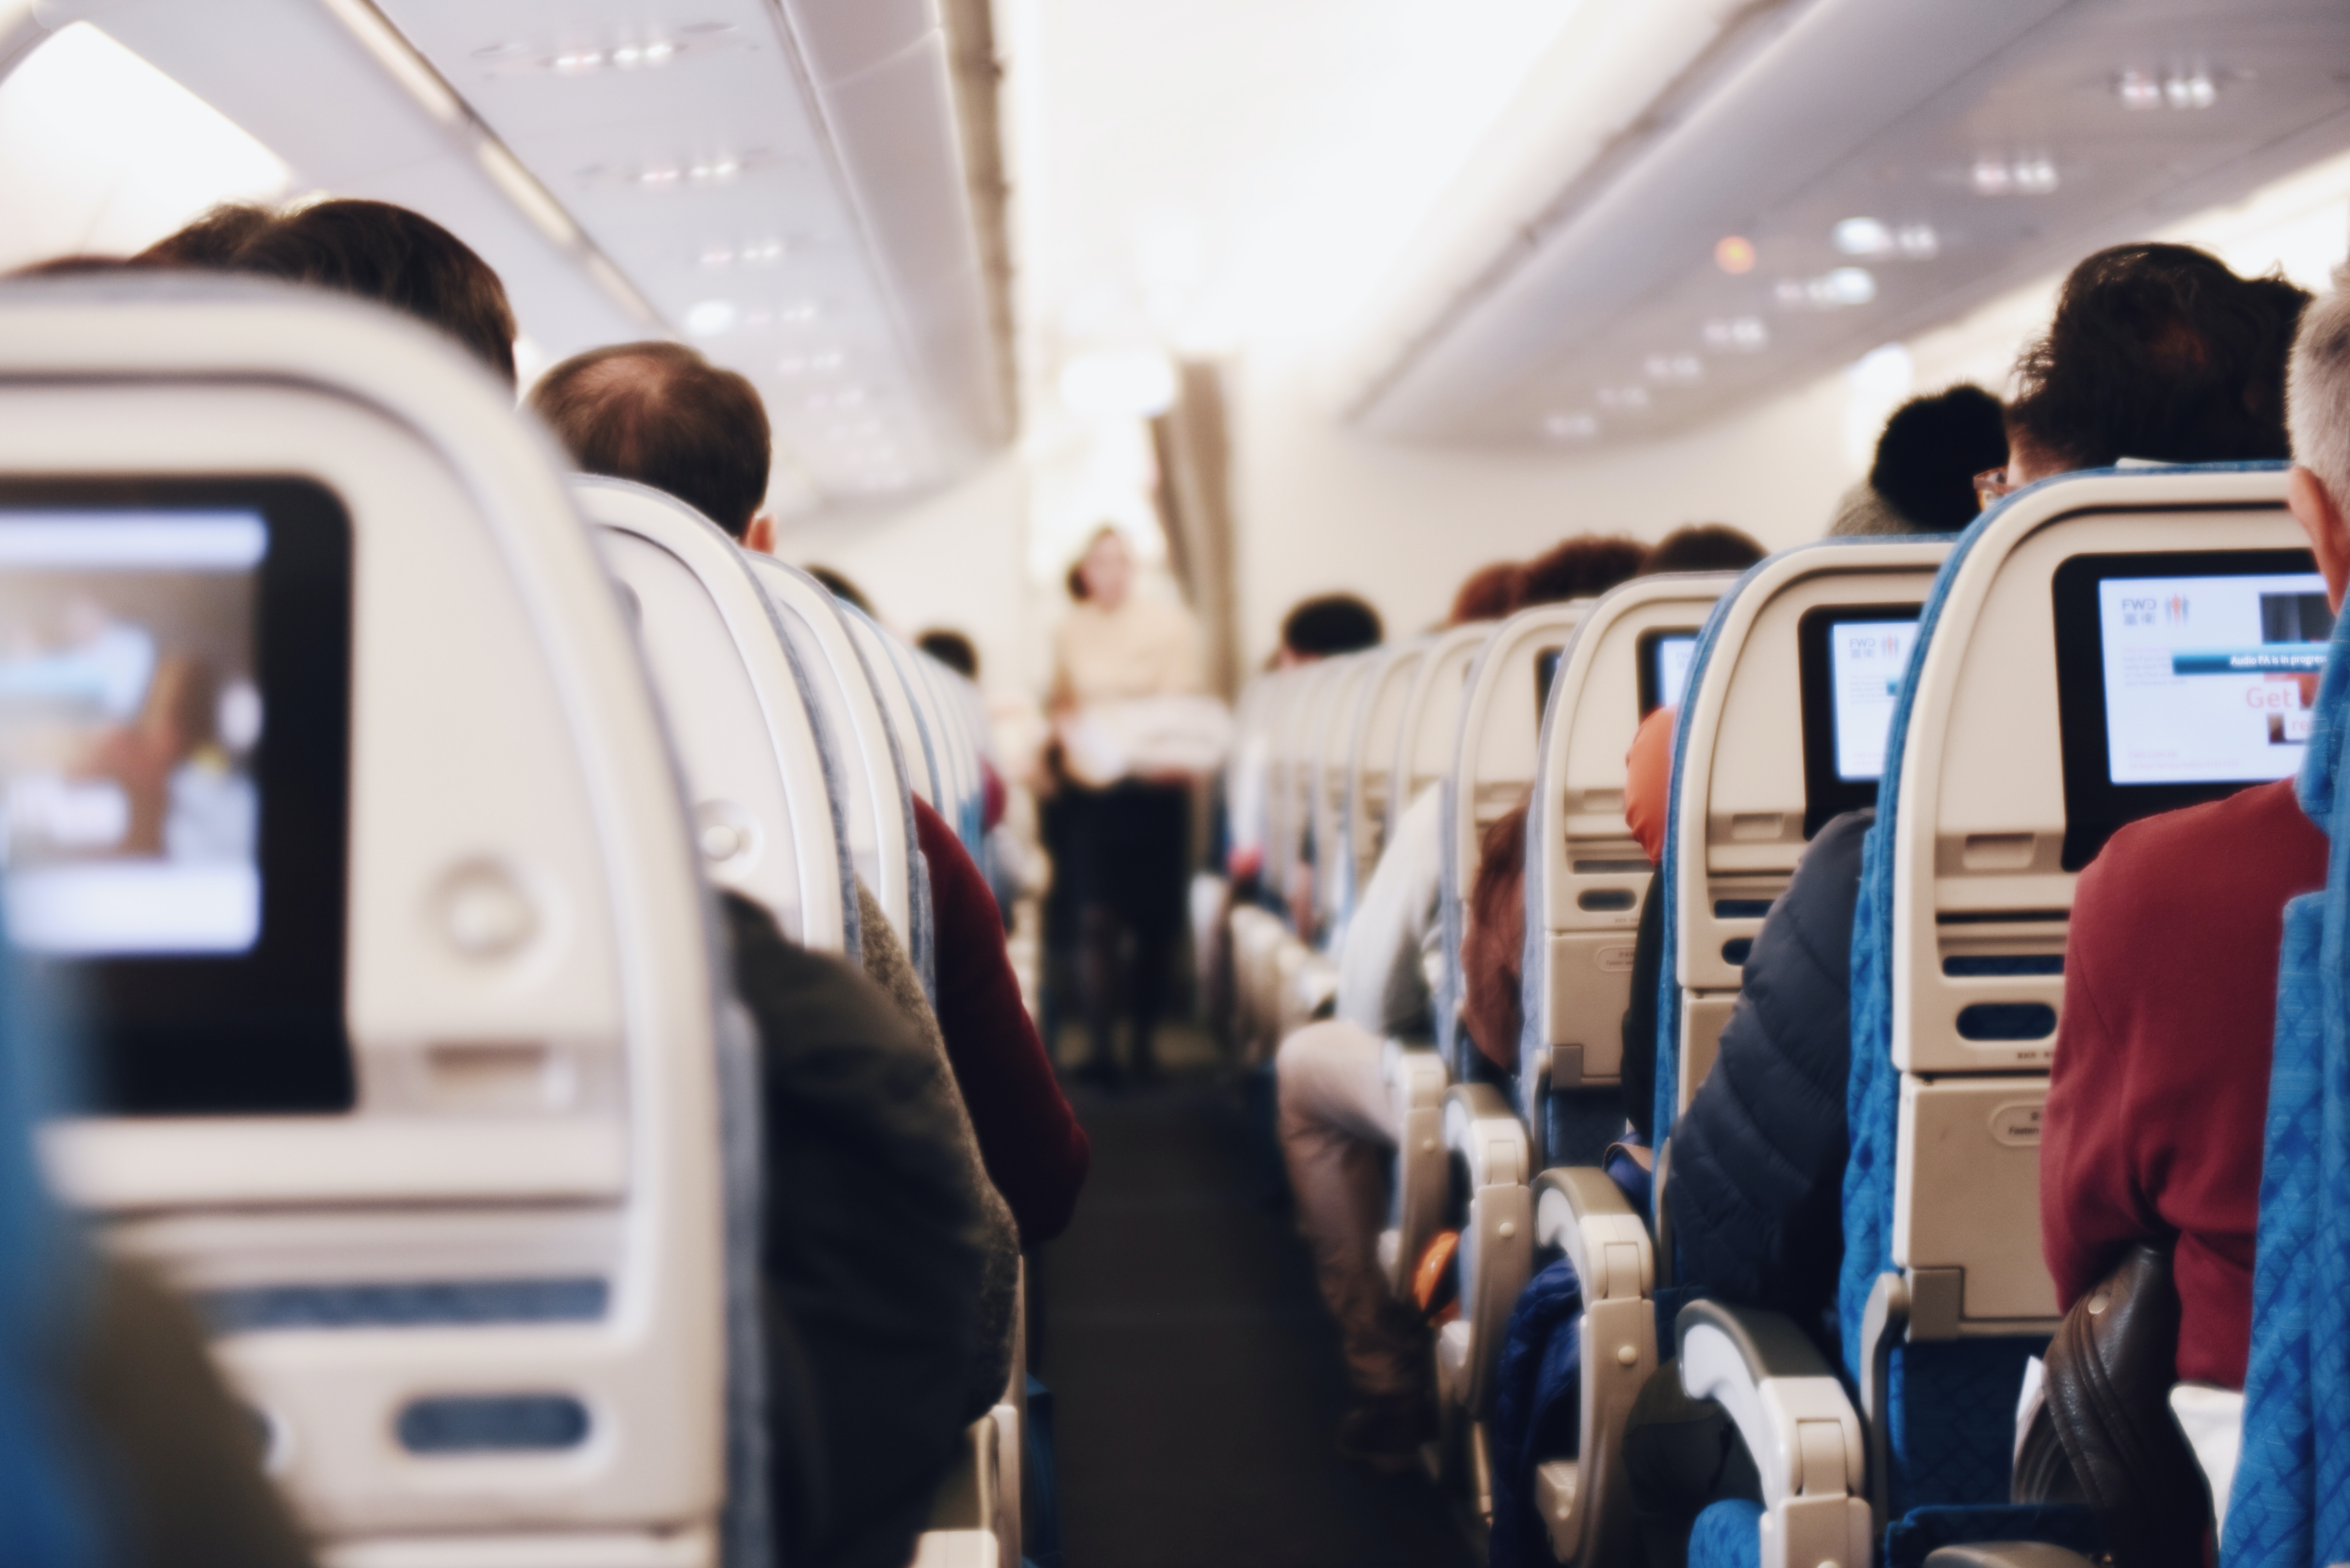 A view of the airplane aisle with a flight attendant carrying a tray